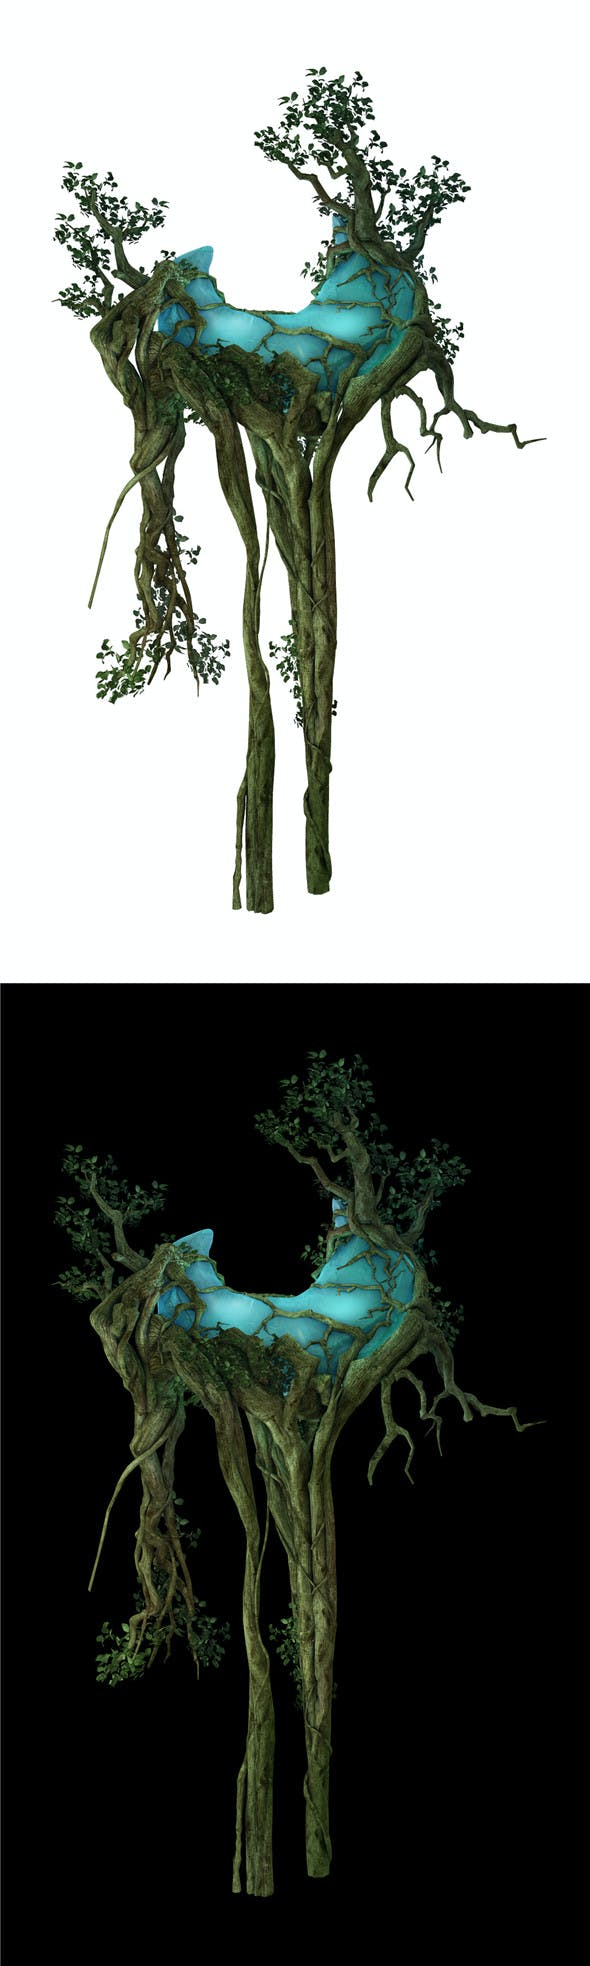 Game Model - Forest - Tree 06 - 3DOcean Item for Sale